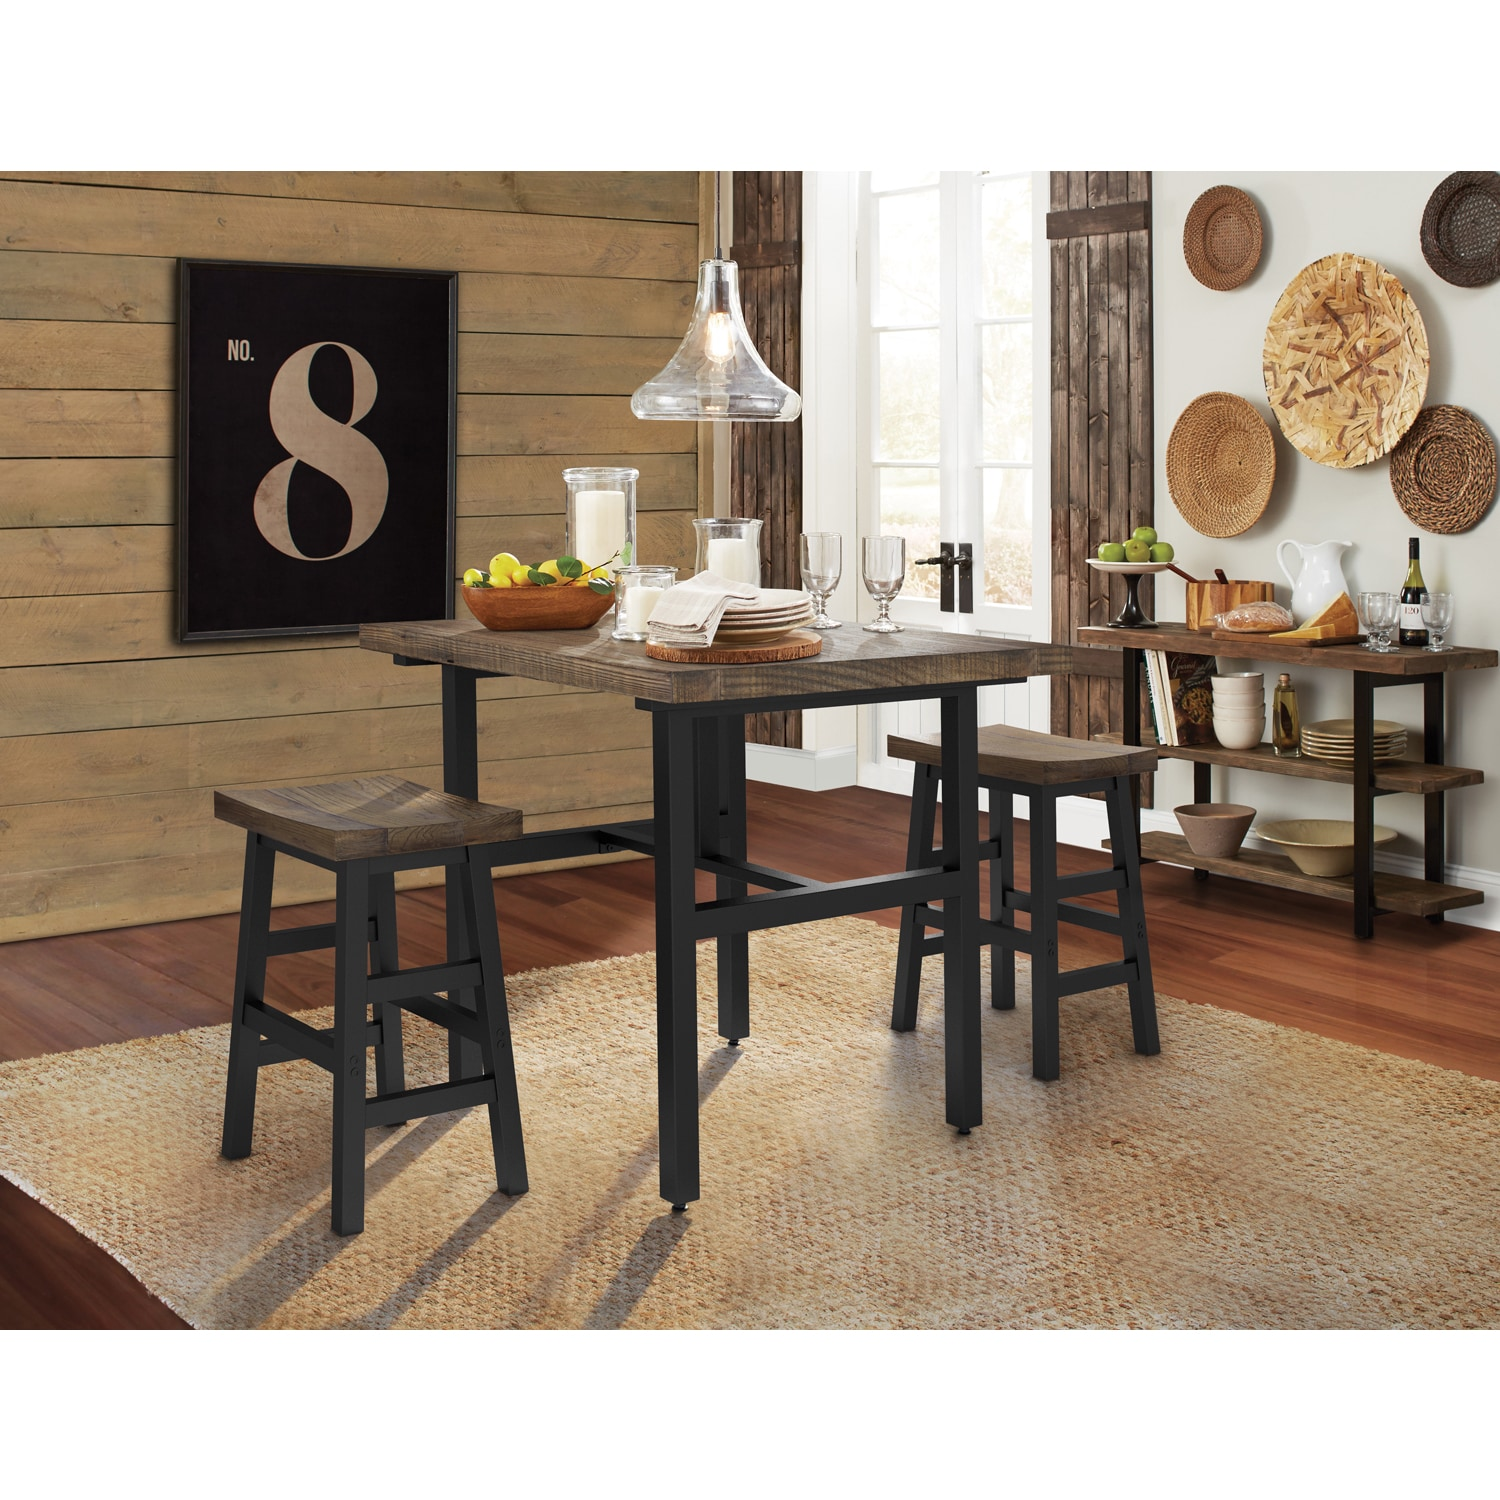 Shop The Gray Barn Michaelis Reclaimed Wood Counter Height Dining